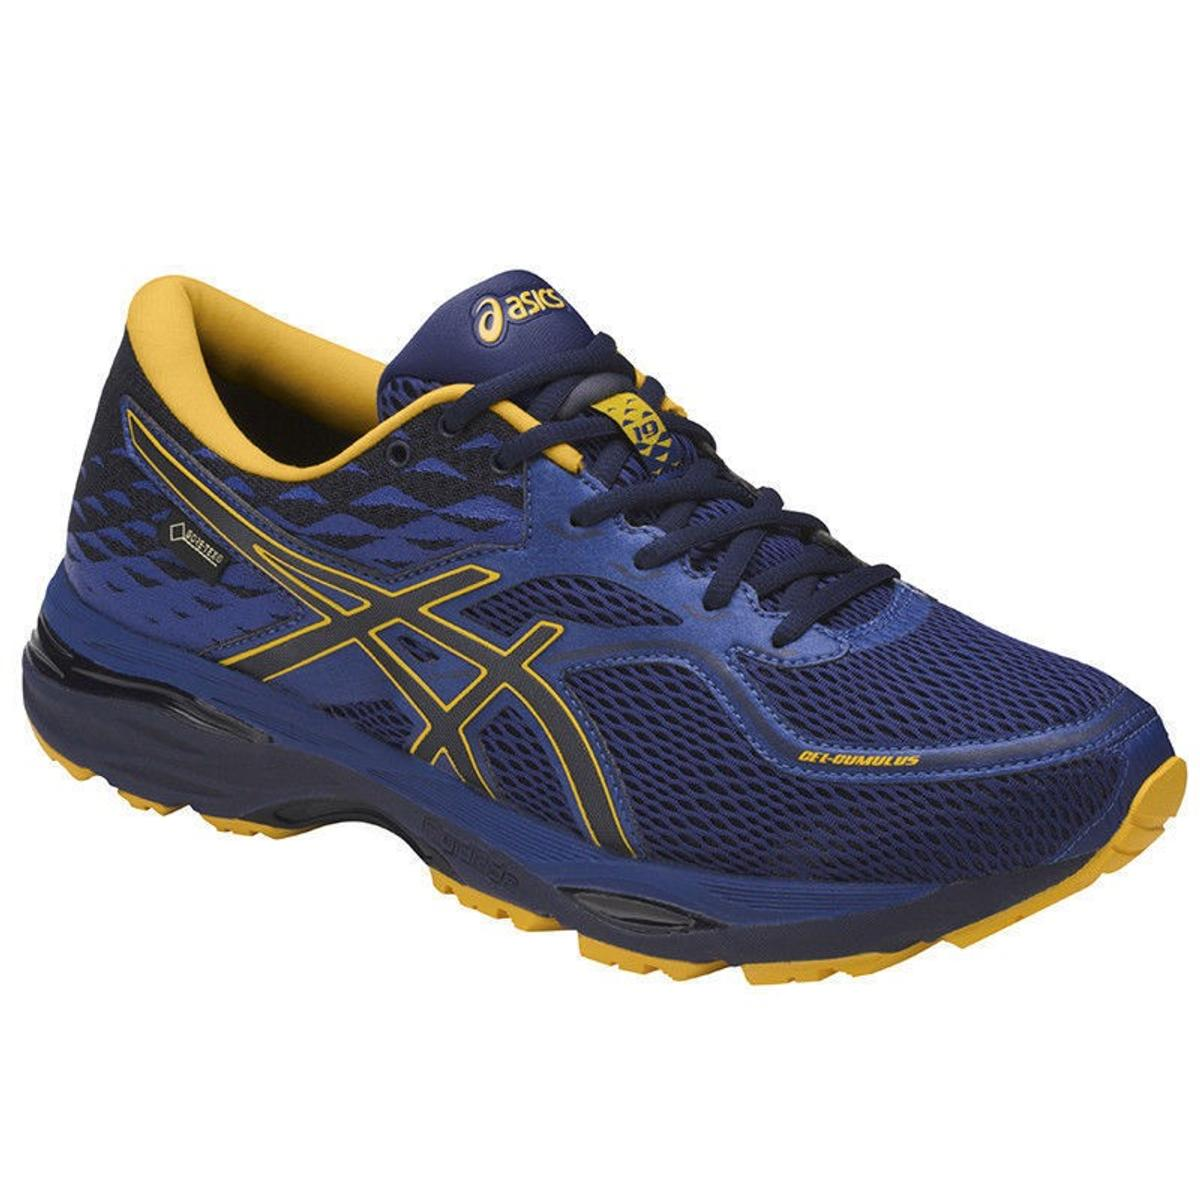 Asics Gel-Cumulus 19 GTX UK 9.5 in Telford for £95.00 for sale - Shpock